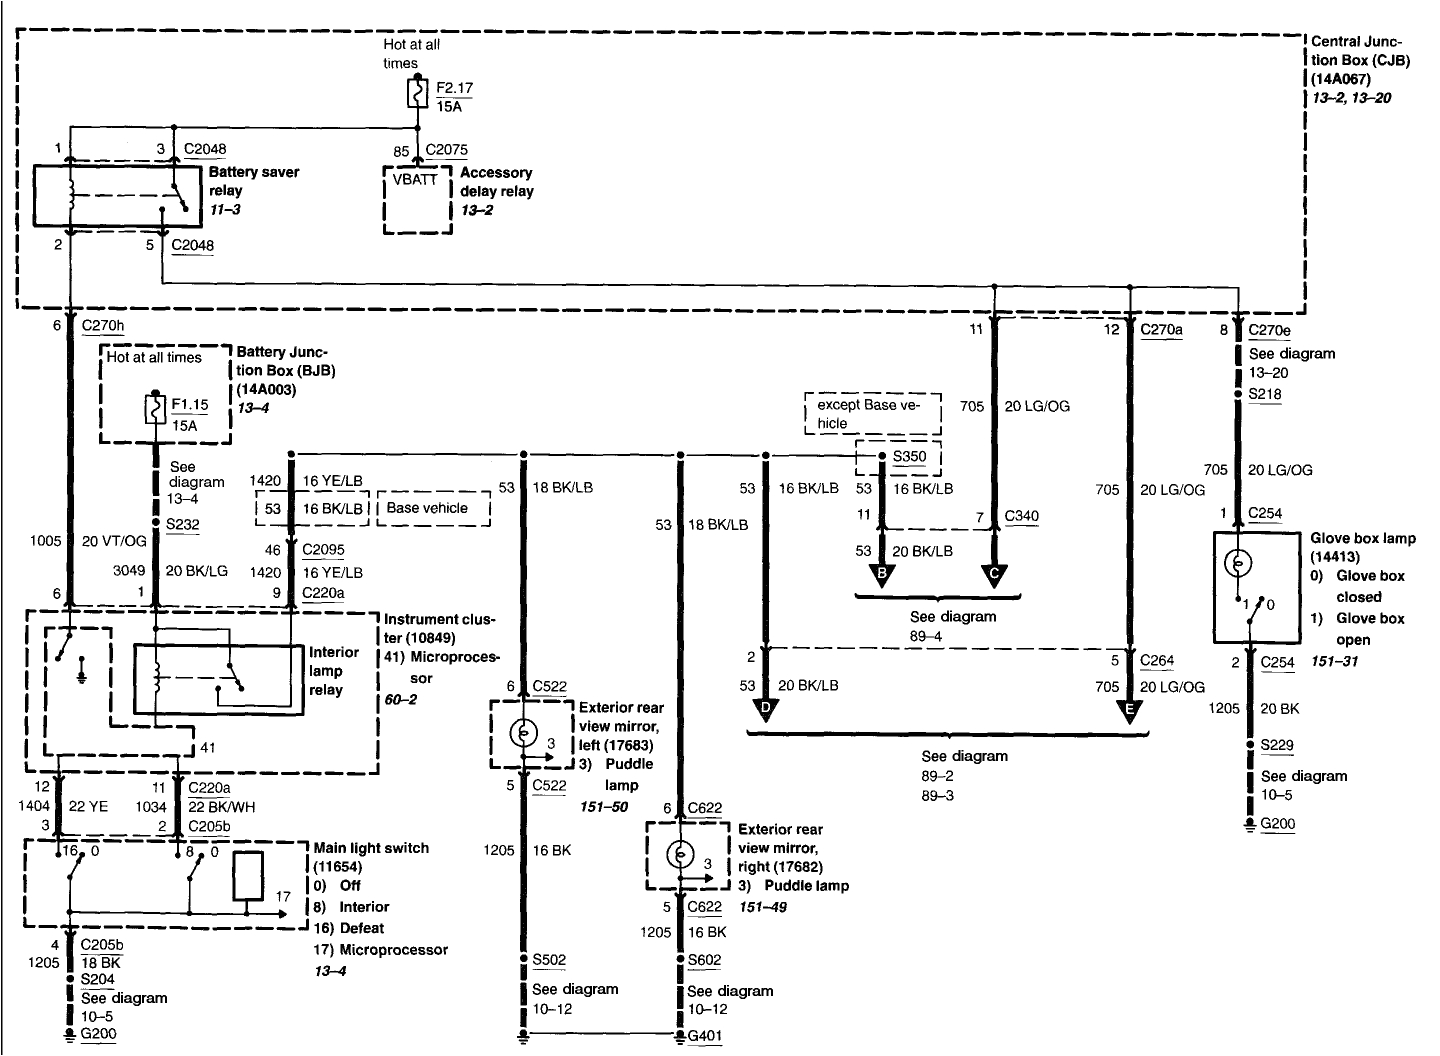 Ford Ranger Dome Light Wiring Diagram Dome Light Wiring Diagram ford Wiring Diagram